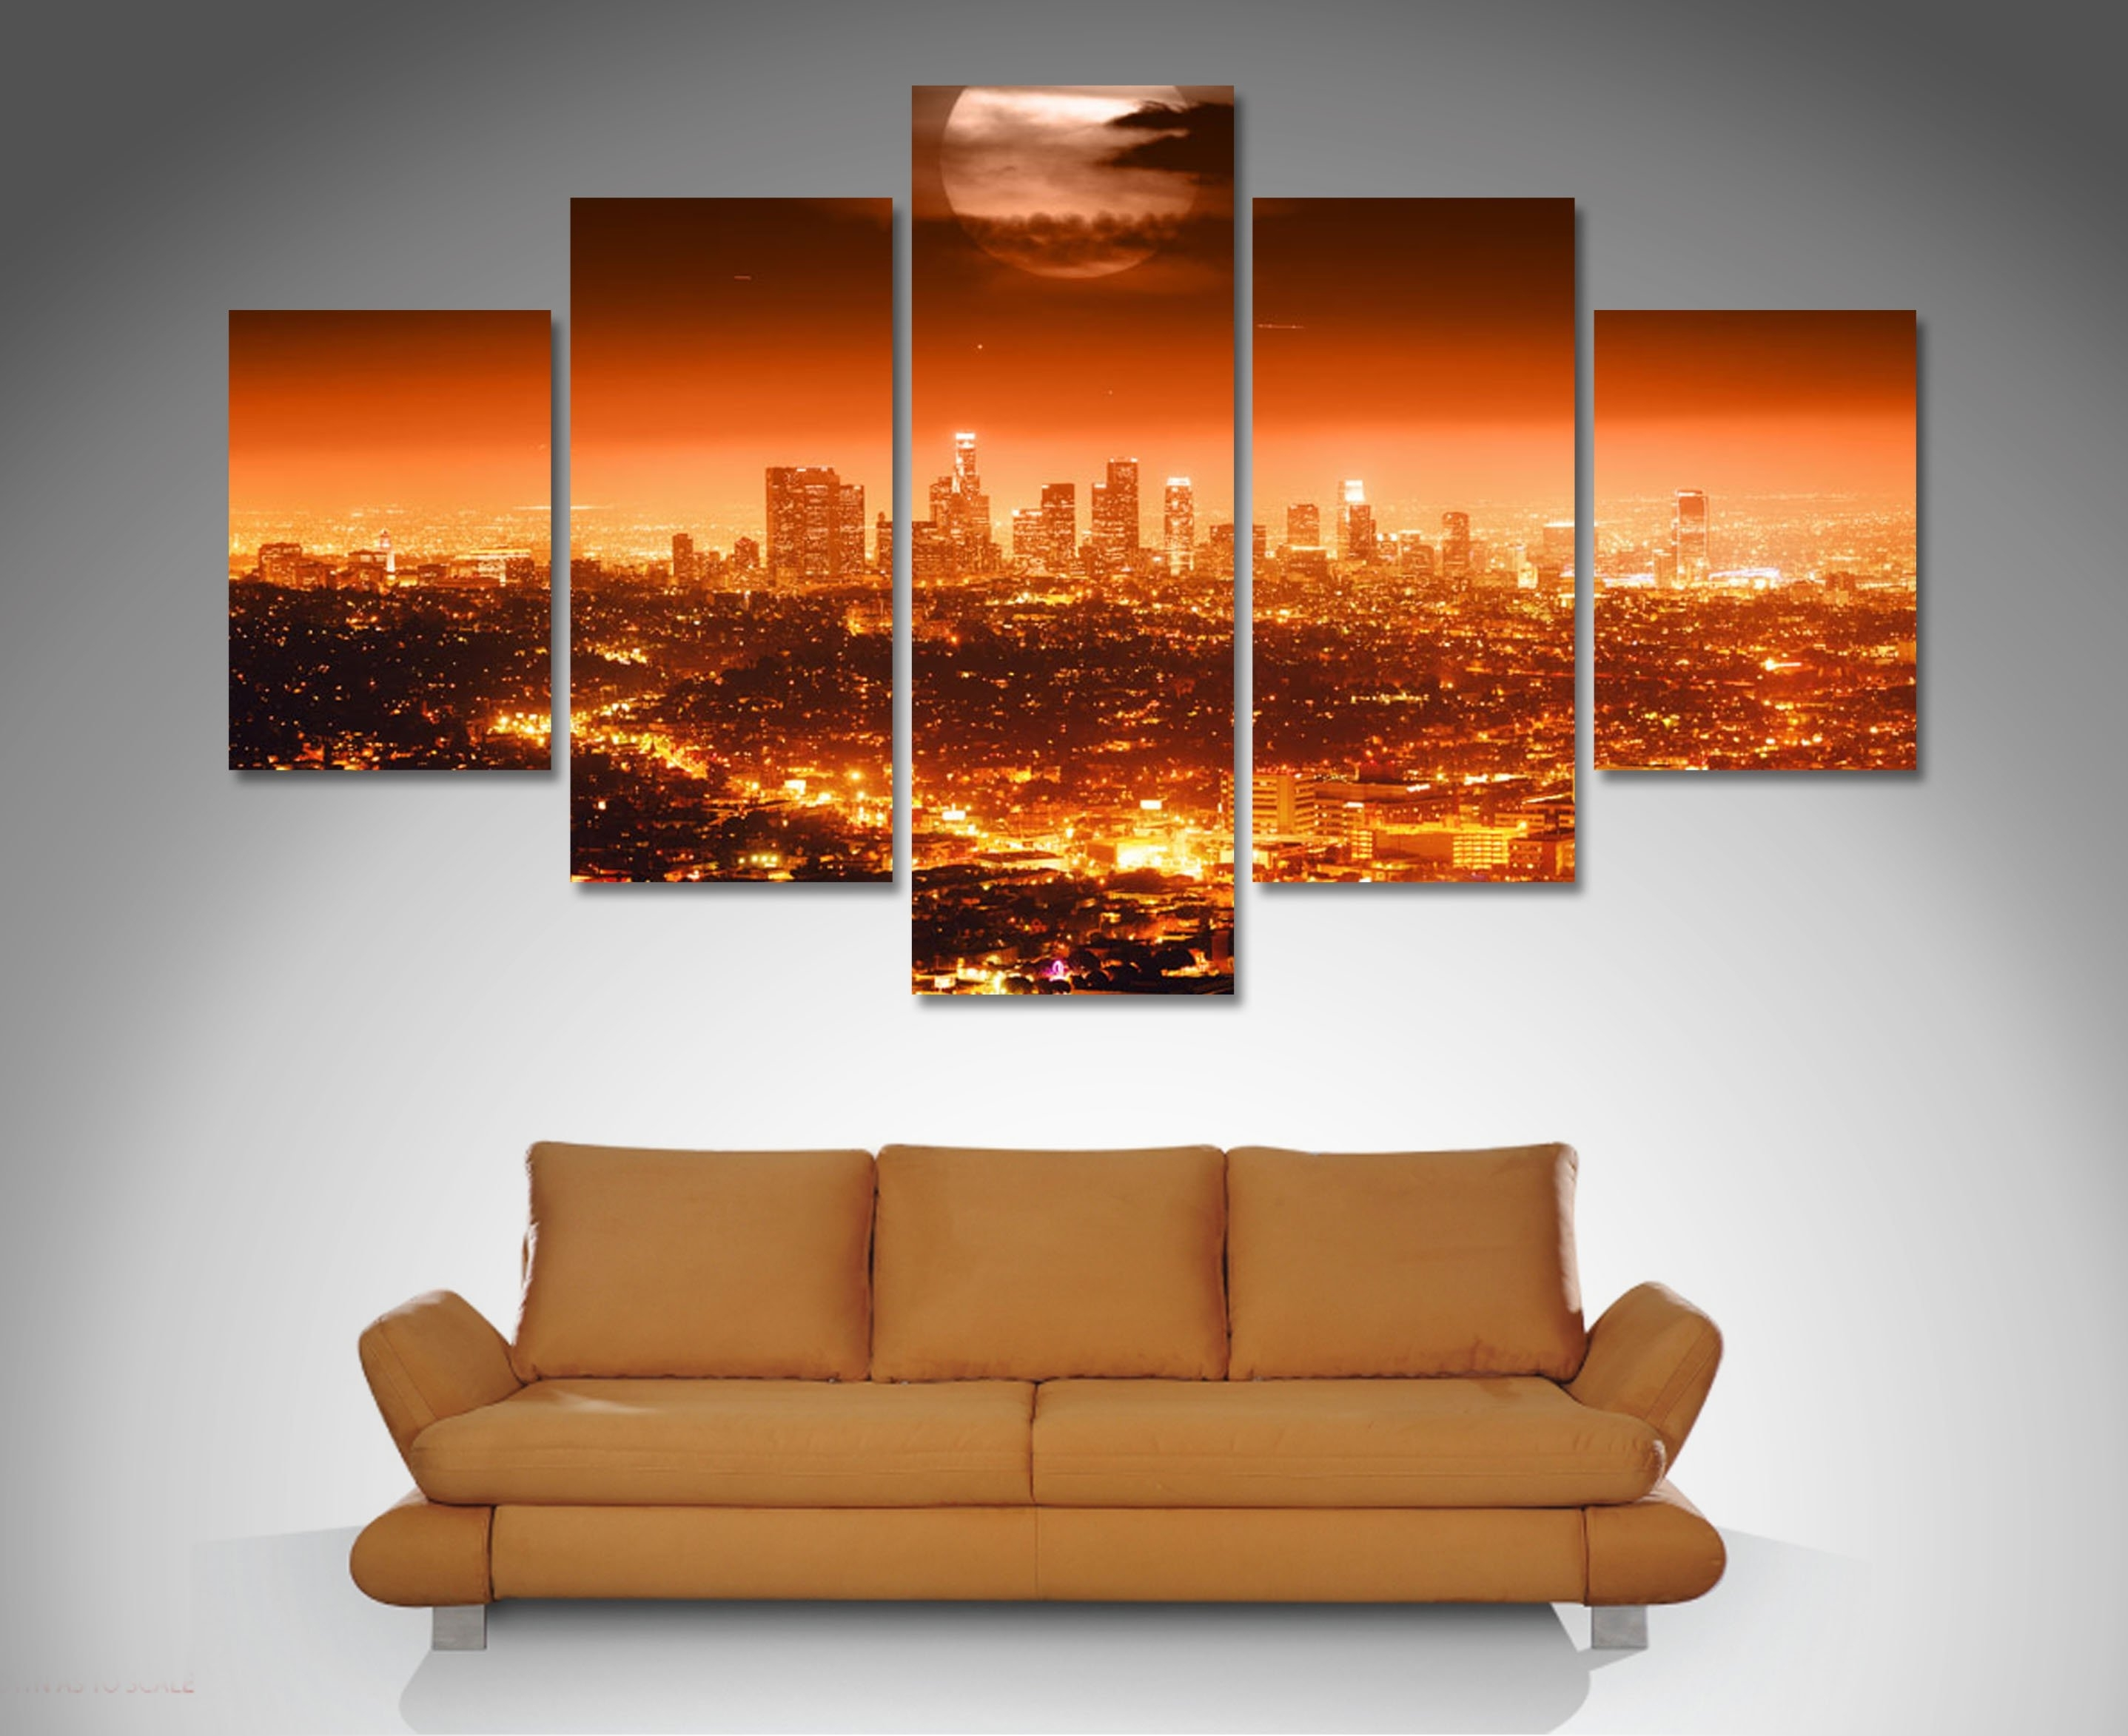 Los Angeles 5 Panel Wall Art Canvas Print with regard to 5 Panel Wall Art (Image 14 of 20)